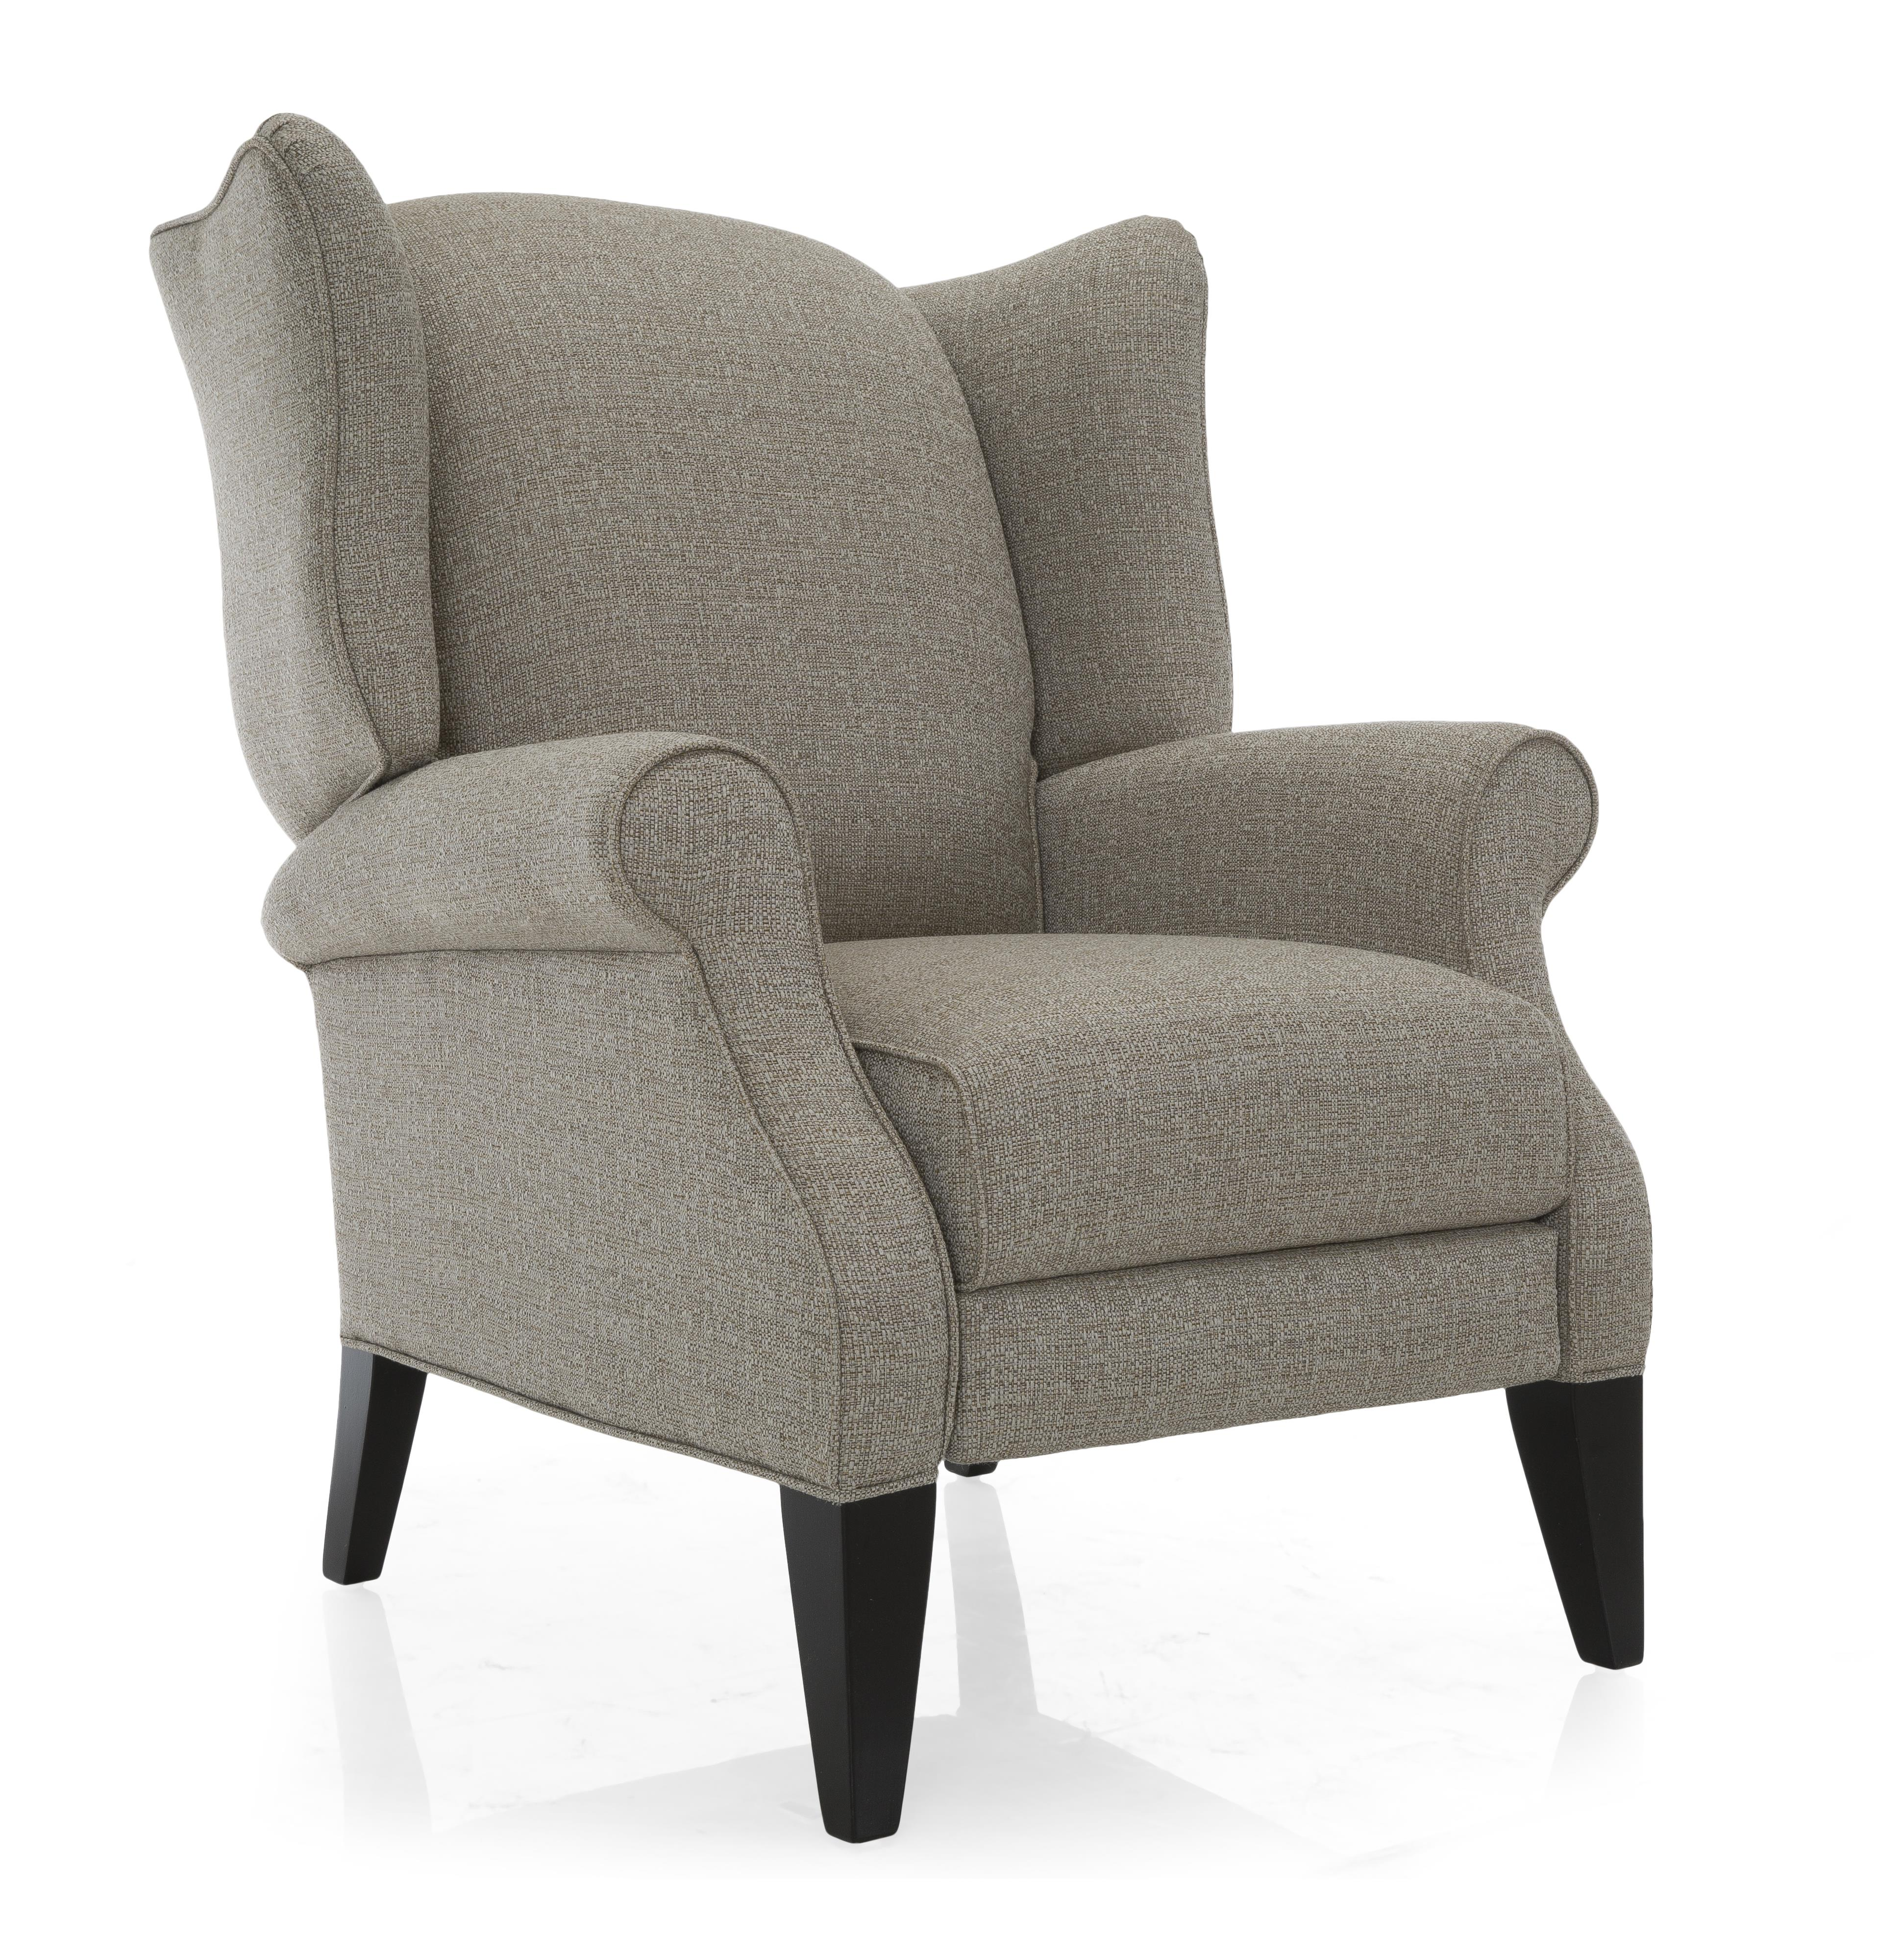 Decor Rest 2220 Traditional High Leg Recliner Wing Chair